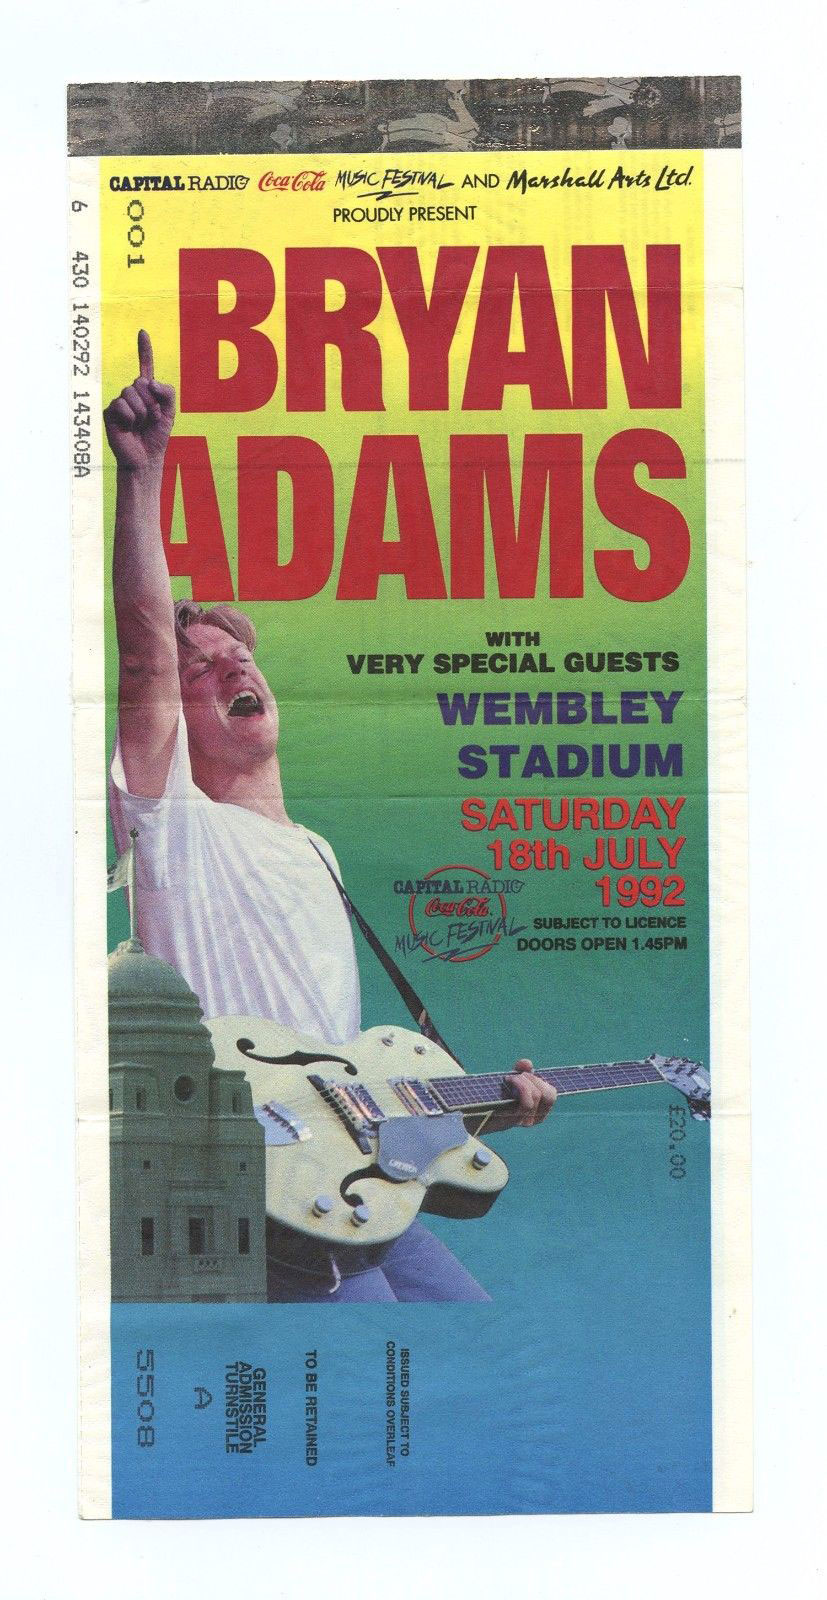 Bryan Adams Ticket 1992 Jul 18 Wembley Stadium London UK Unused